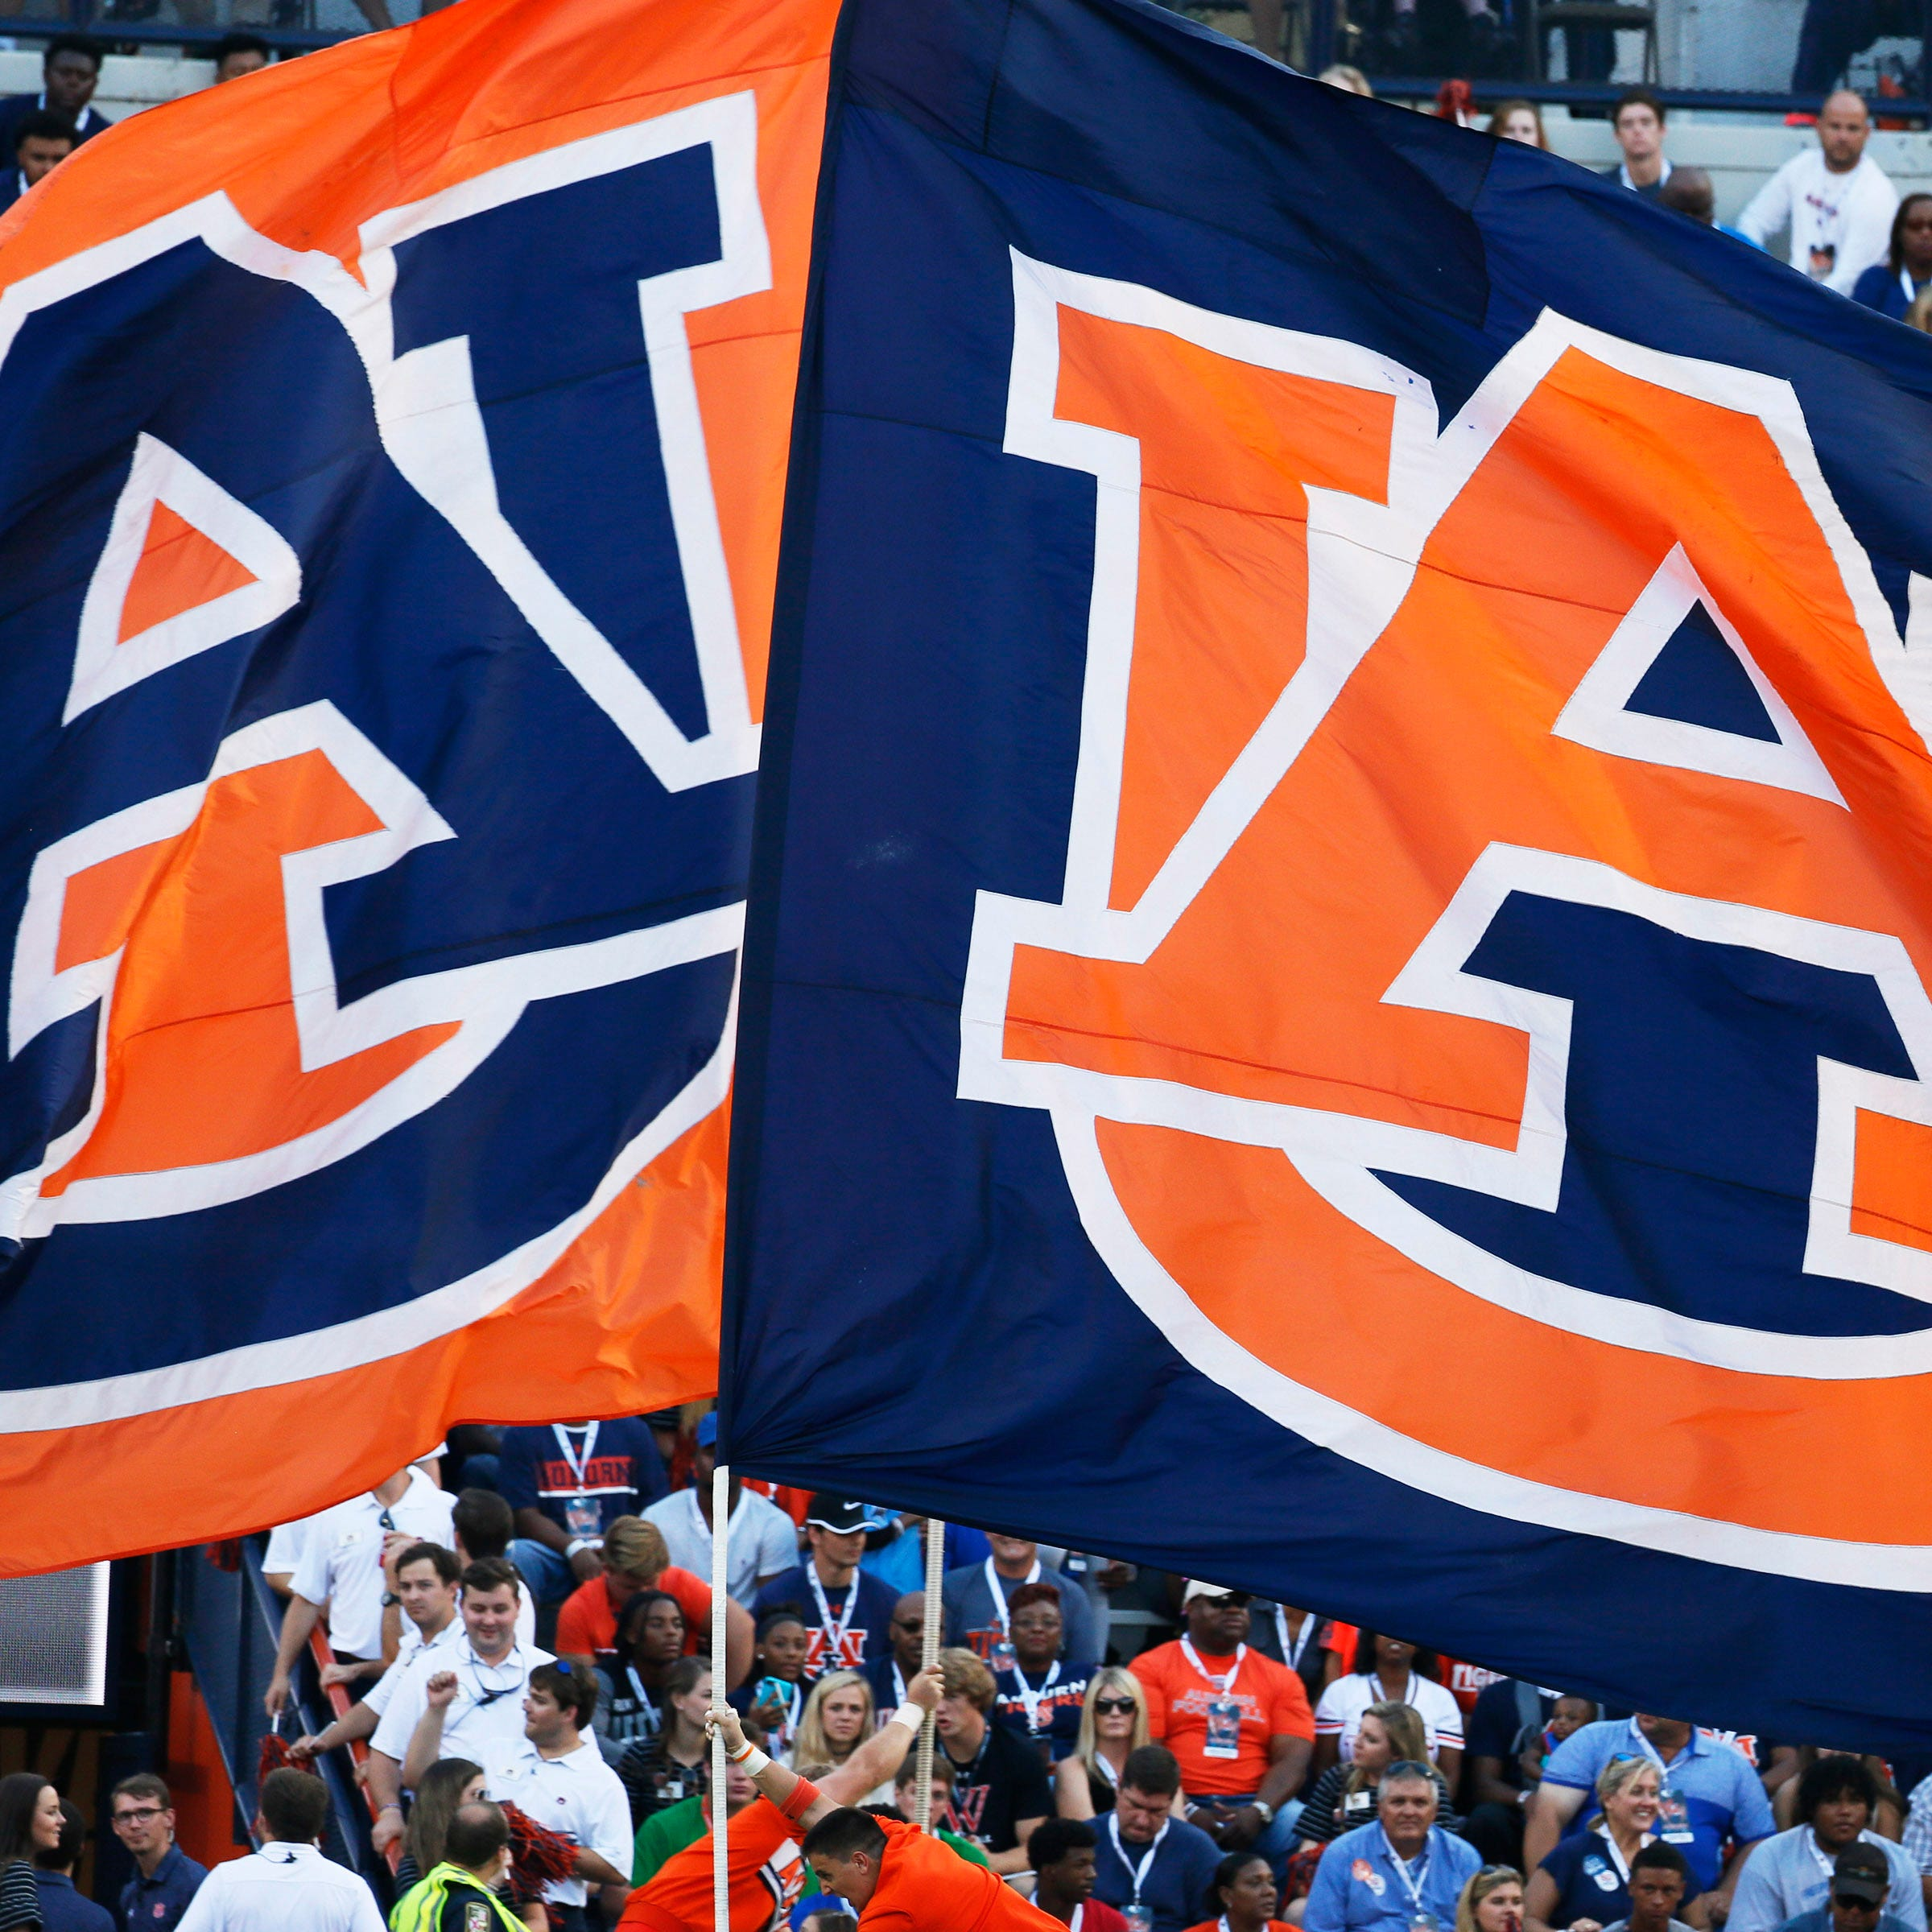 LIVE: Auburn football takes on Ole Miss in Oxford